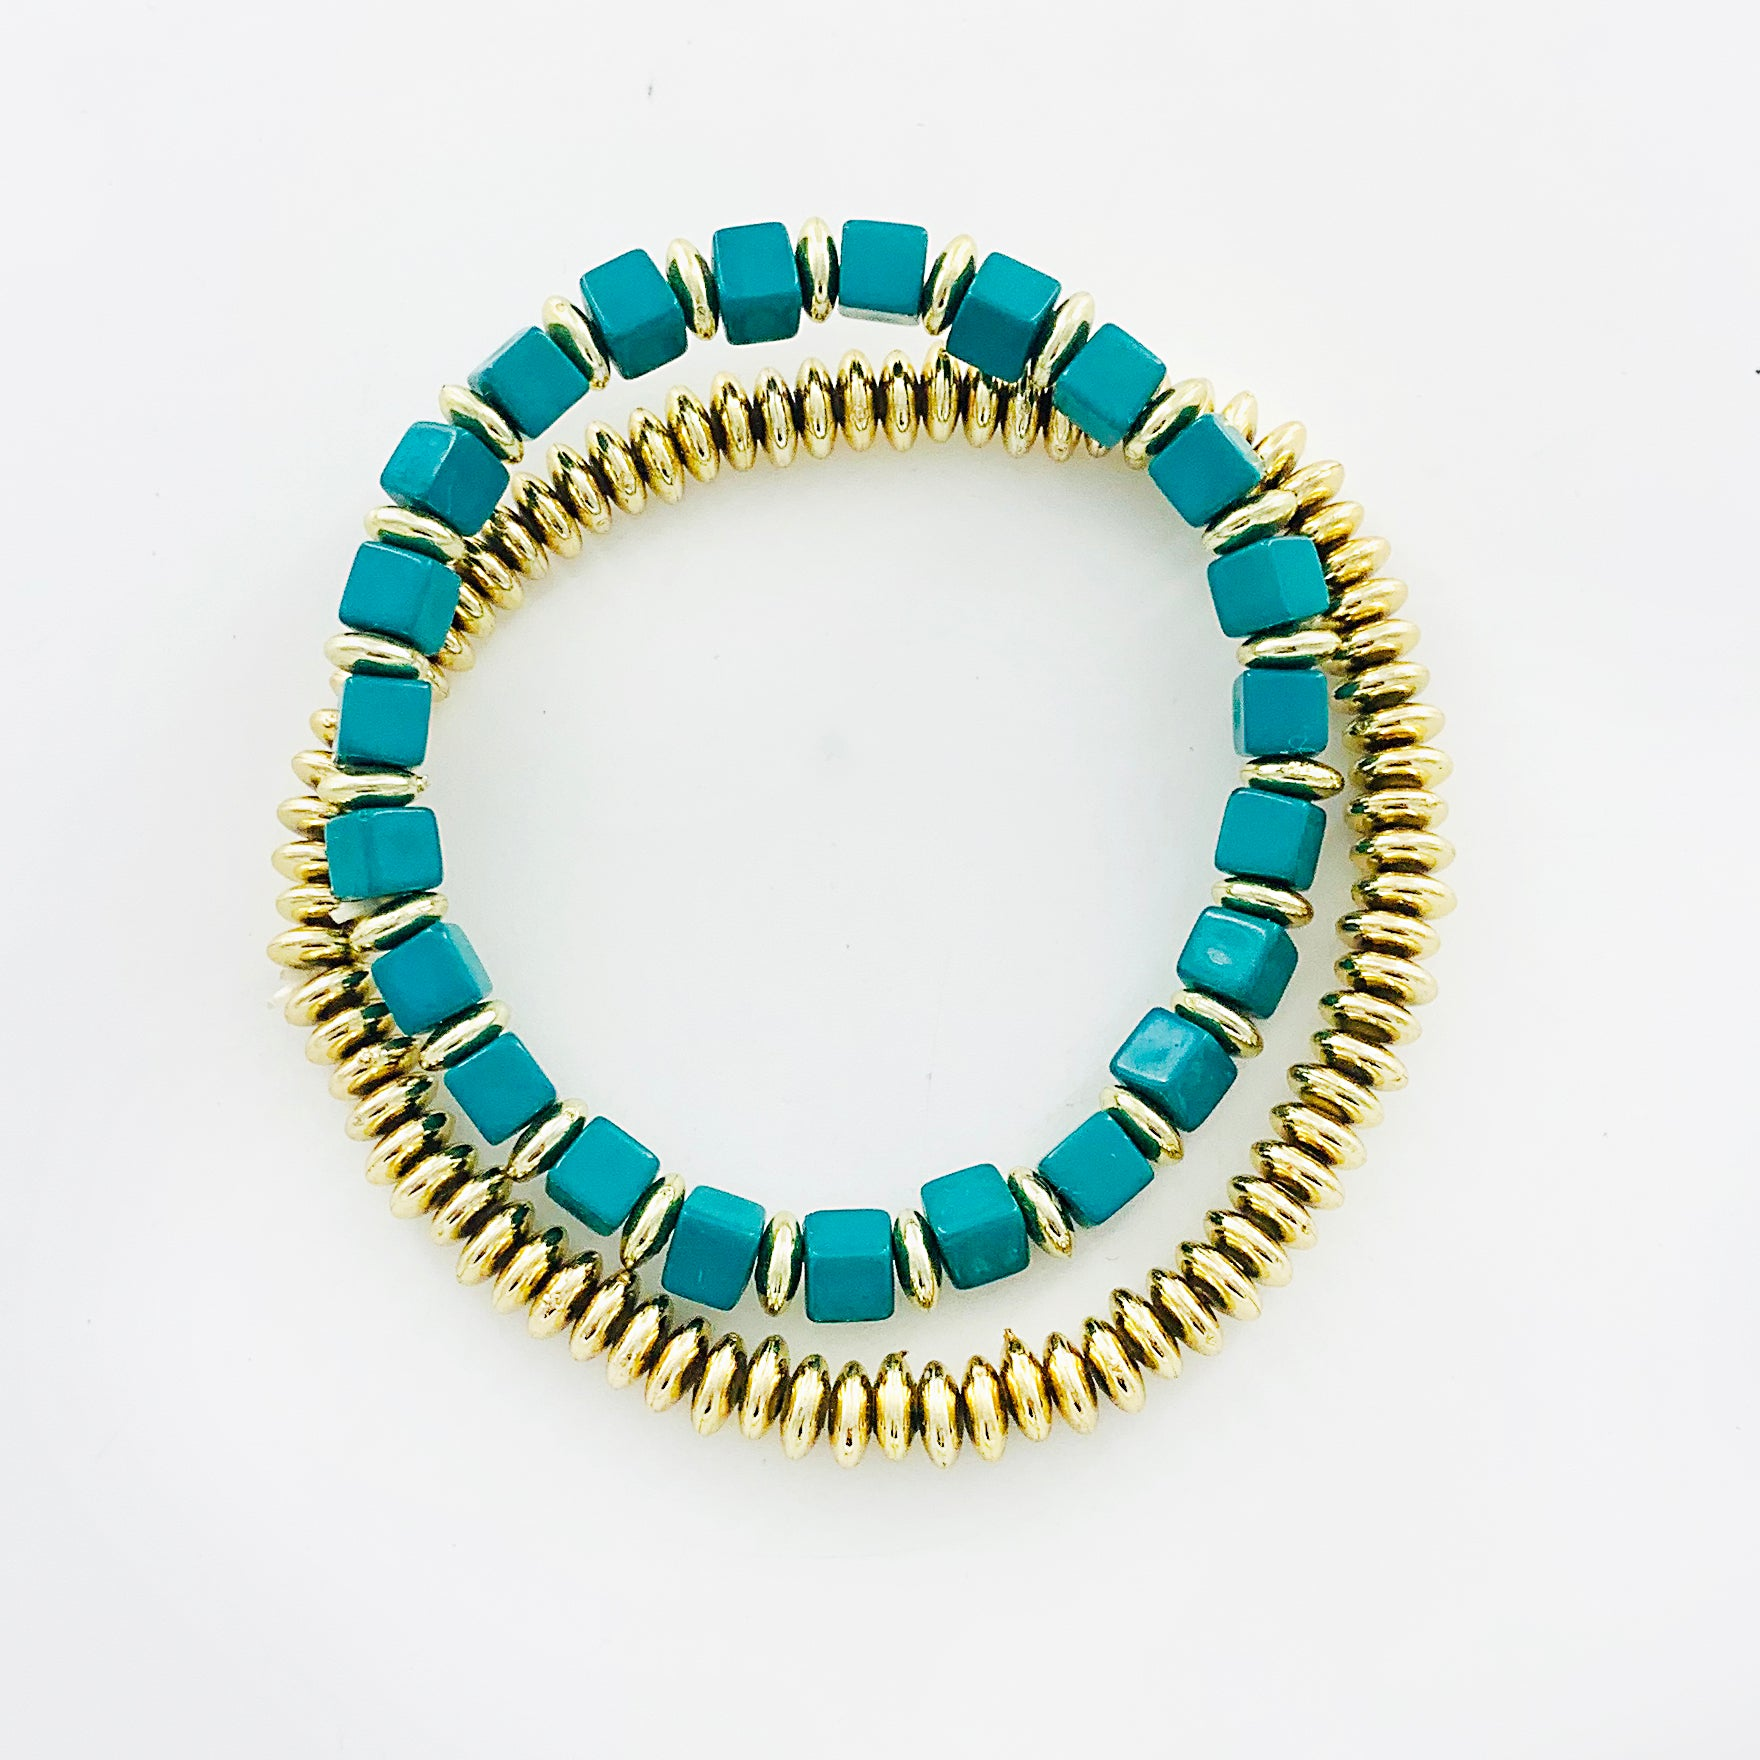 Teal and gold beaded double bracelets